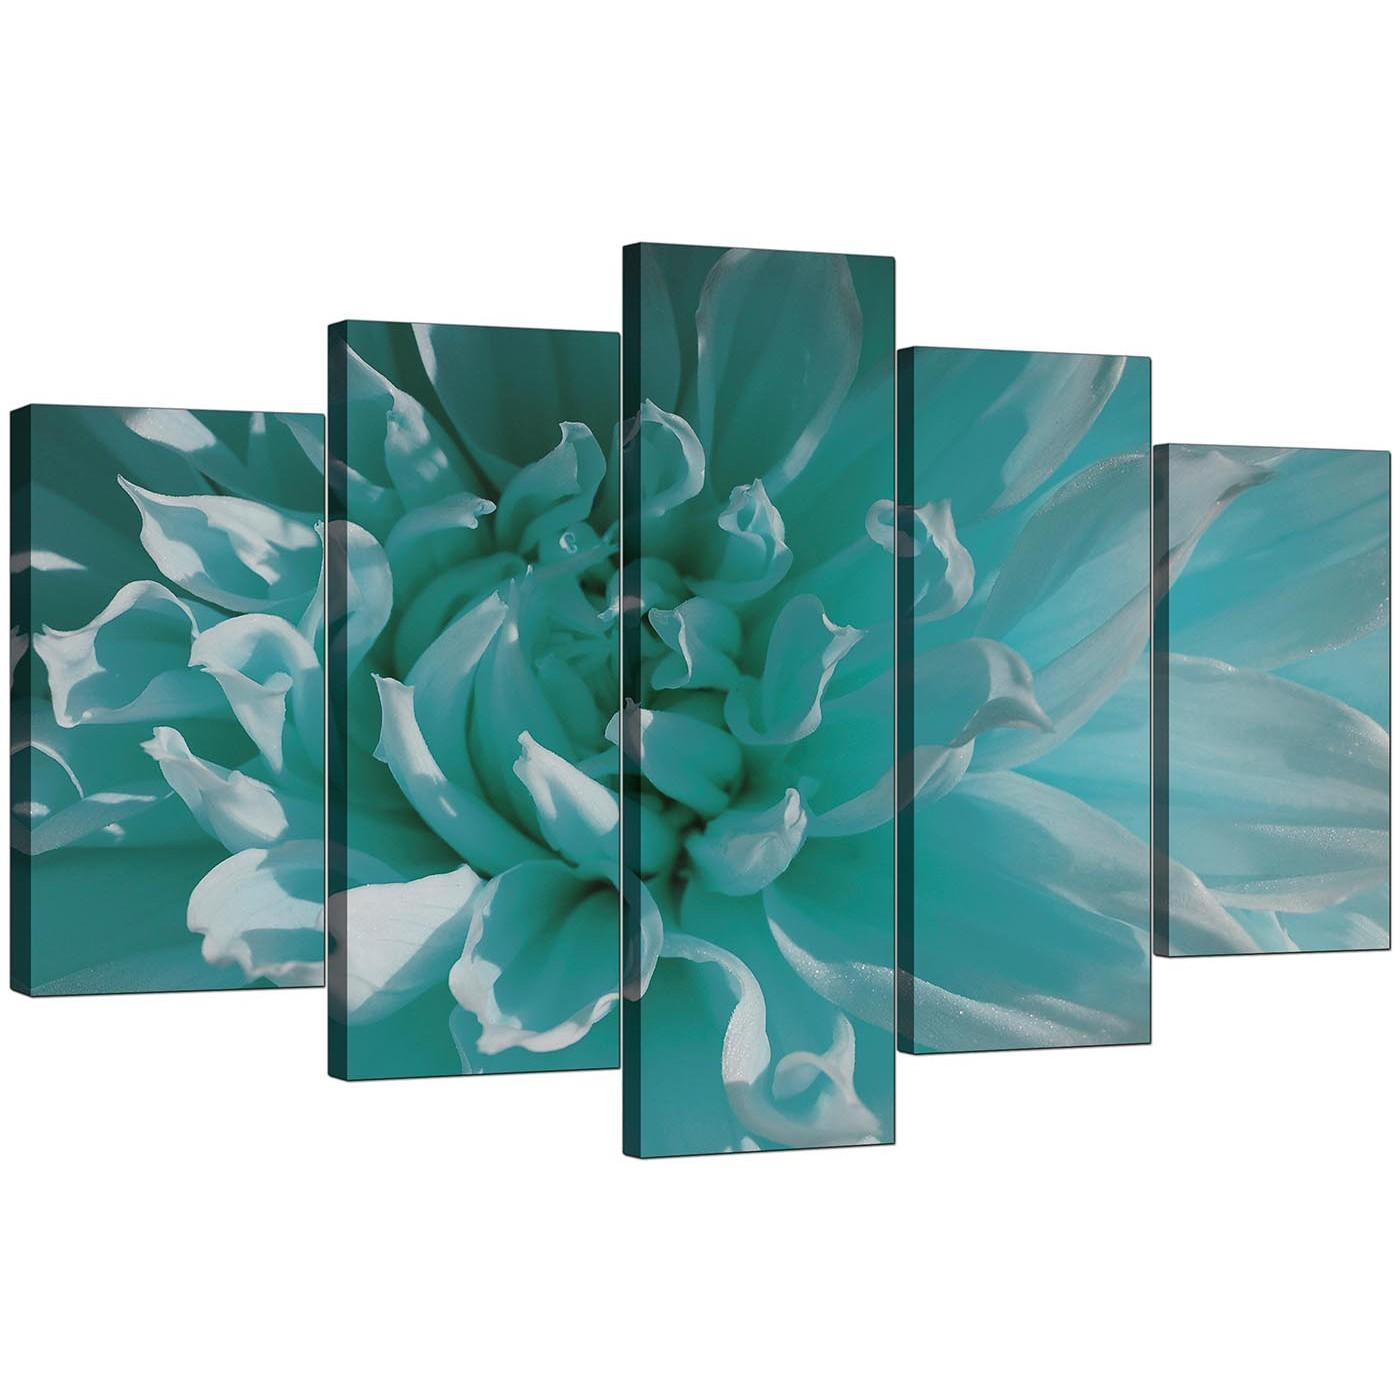 Extra Large Flower Canvas Wall Art 5 Piece In Teal Within Teal Flower Canvas Wall Art (View 10 of 20)